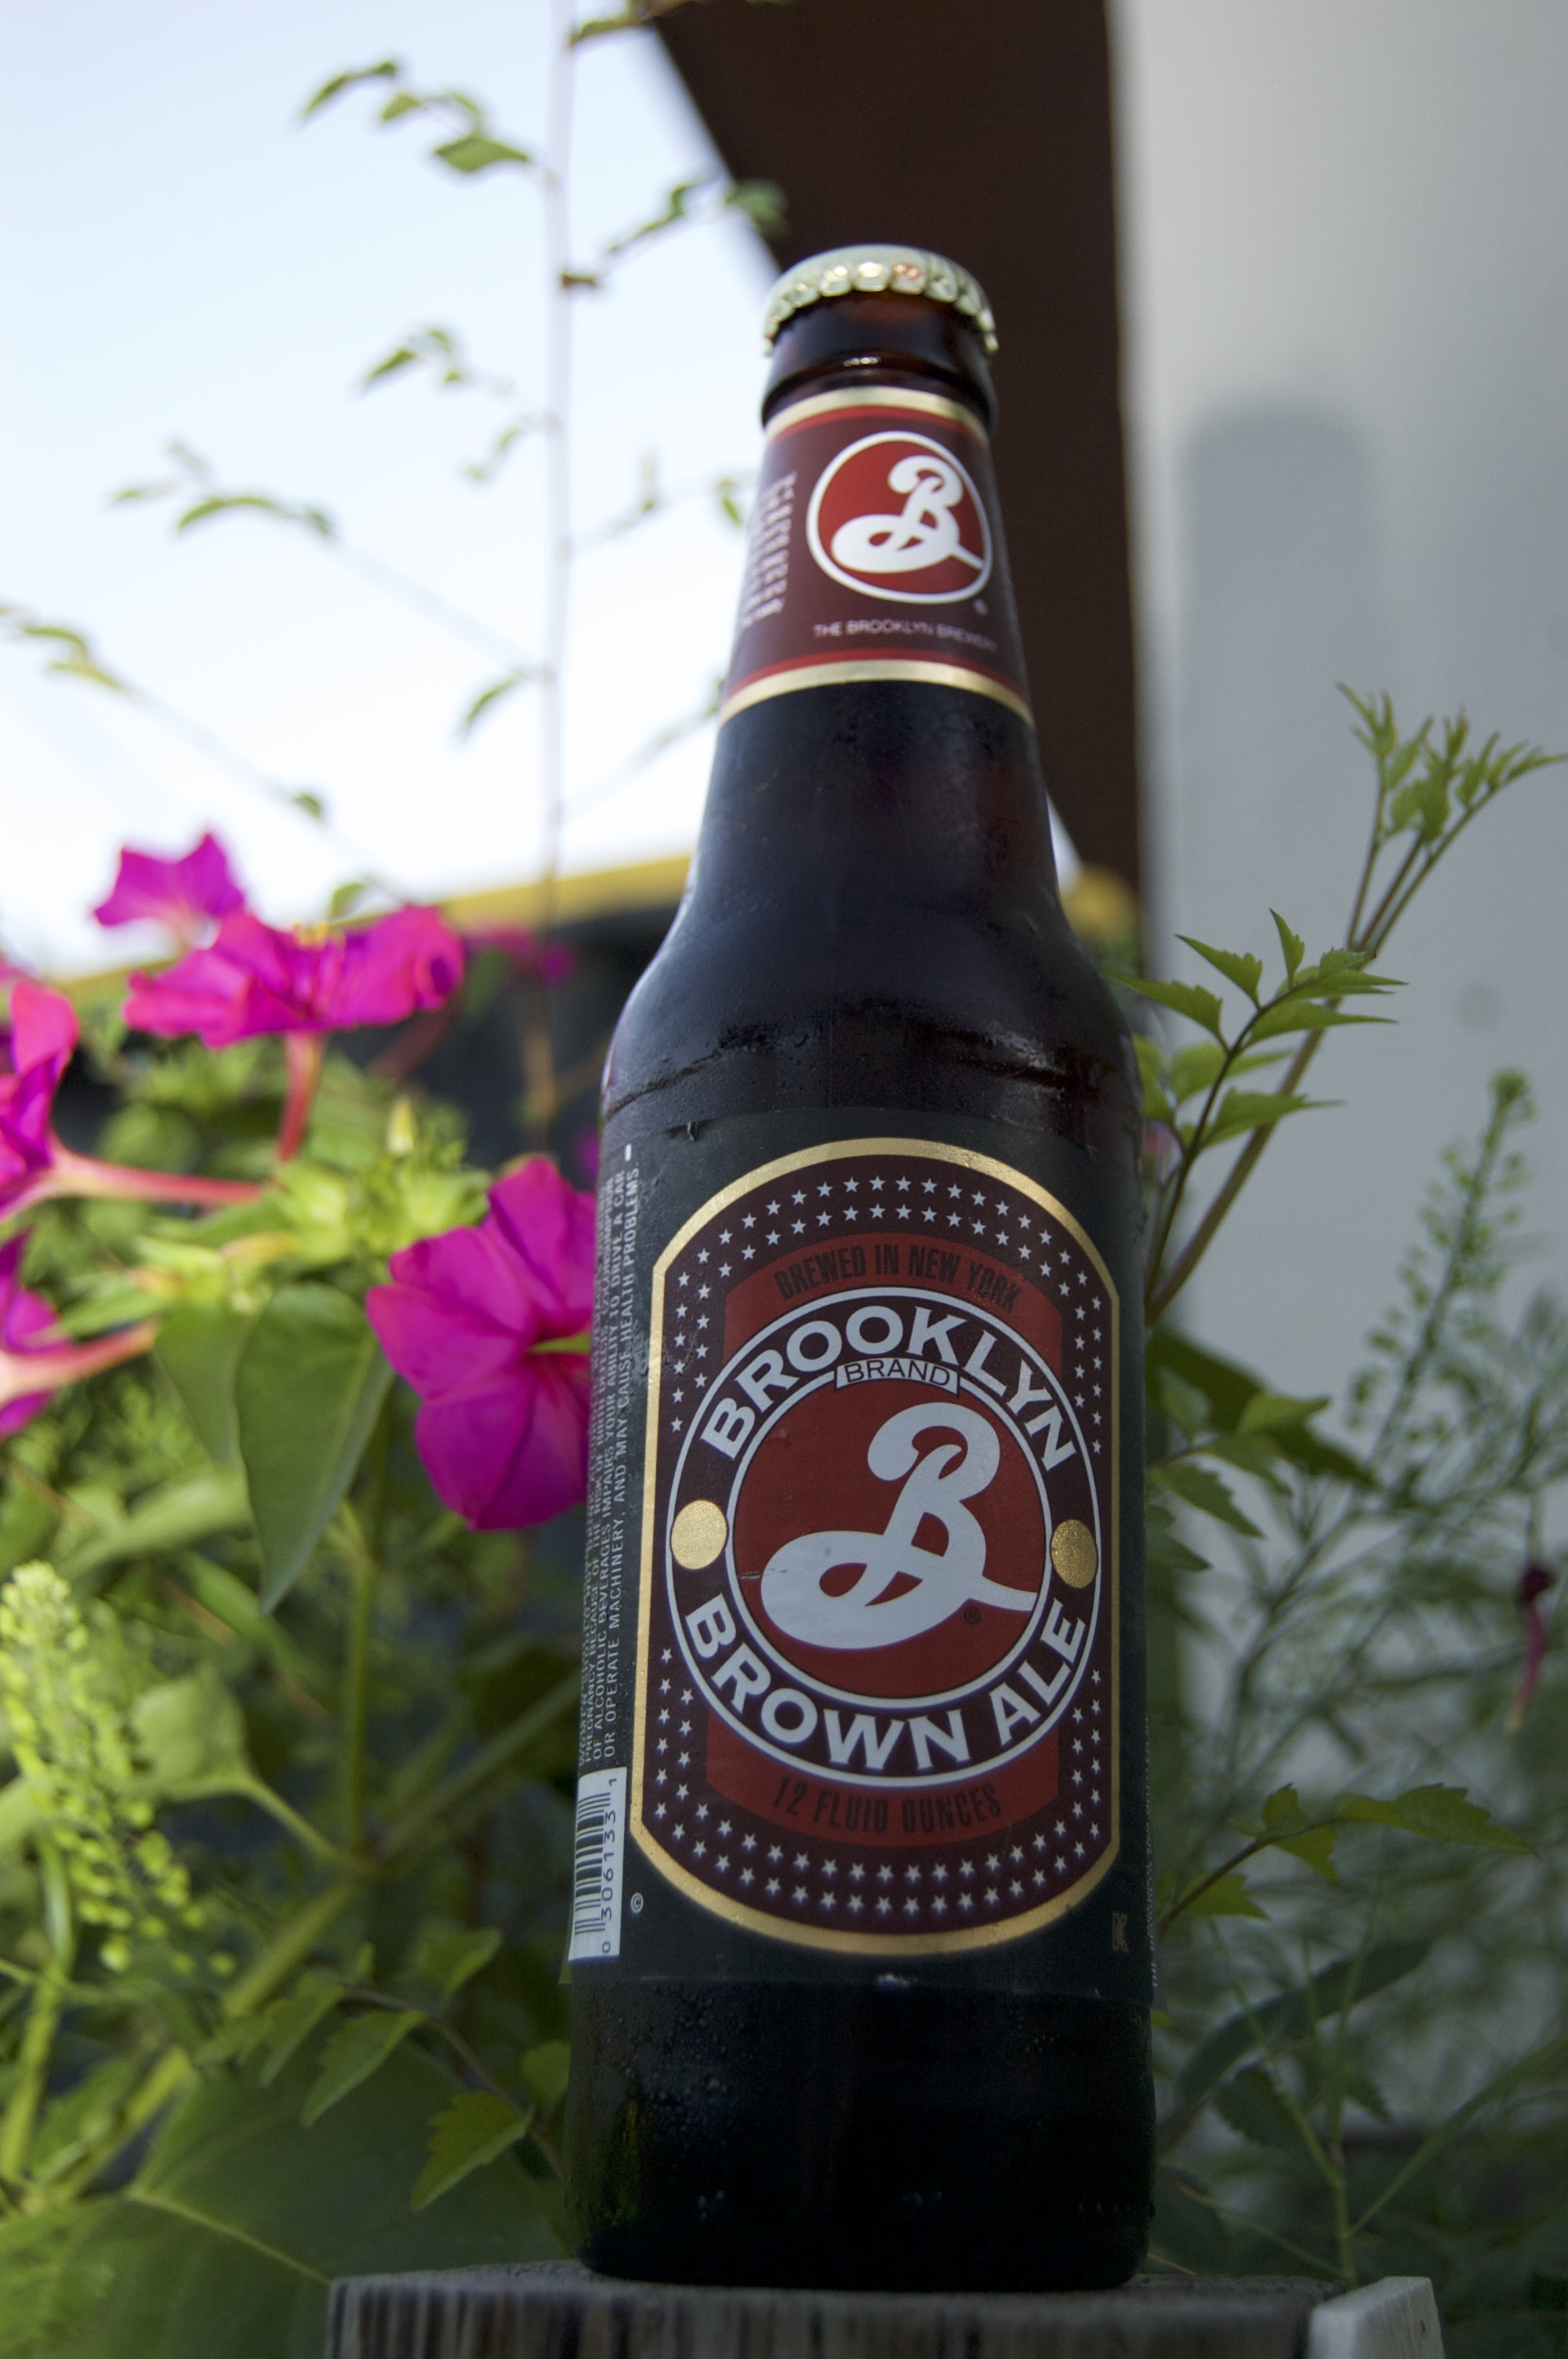 Brooklyn Brown Ale - May 2018Straight from New York to my Florida apartment. Smooth, a little hoppy, sweet and caramely. This is the kind of beer I'd like to have while playing a game of D&D, or re-watching Labyrinth.You remember Labyrinth right? My computer keeps spell checking me because I keep spelling it wrong. It looks like